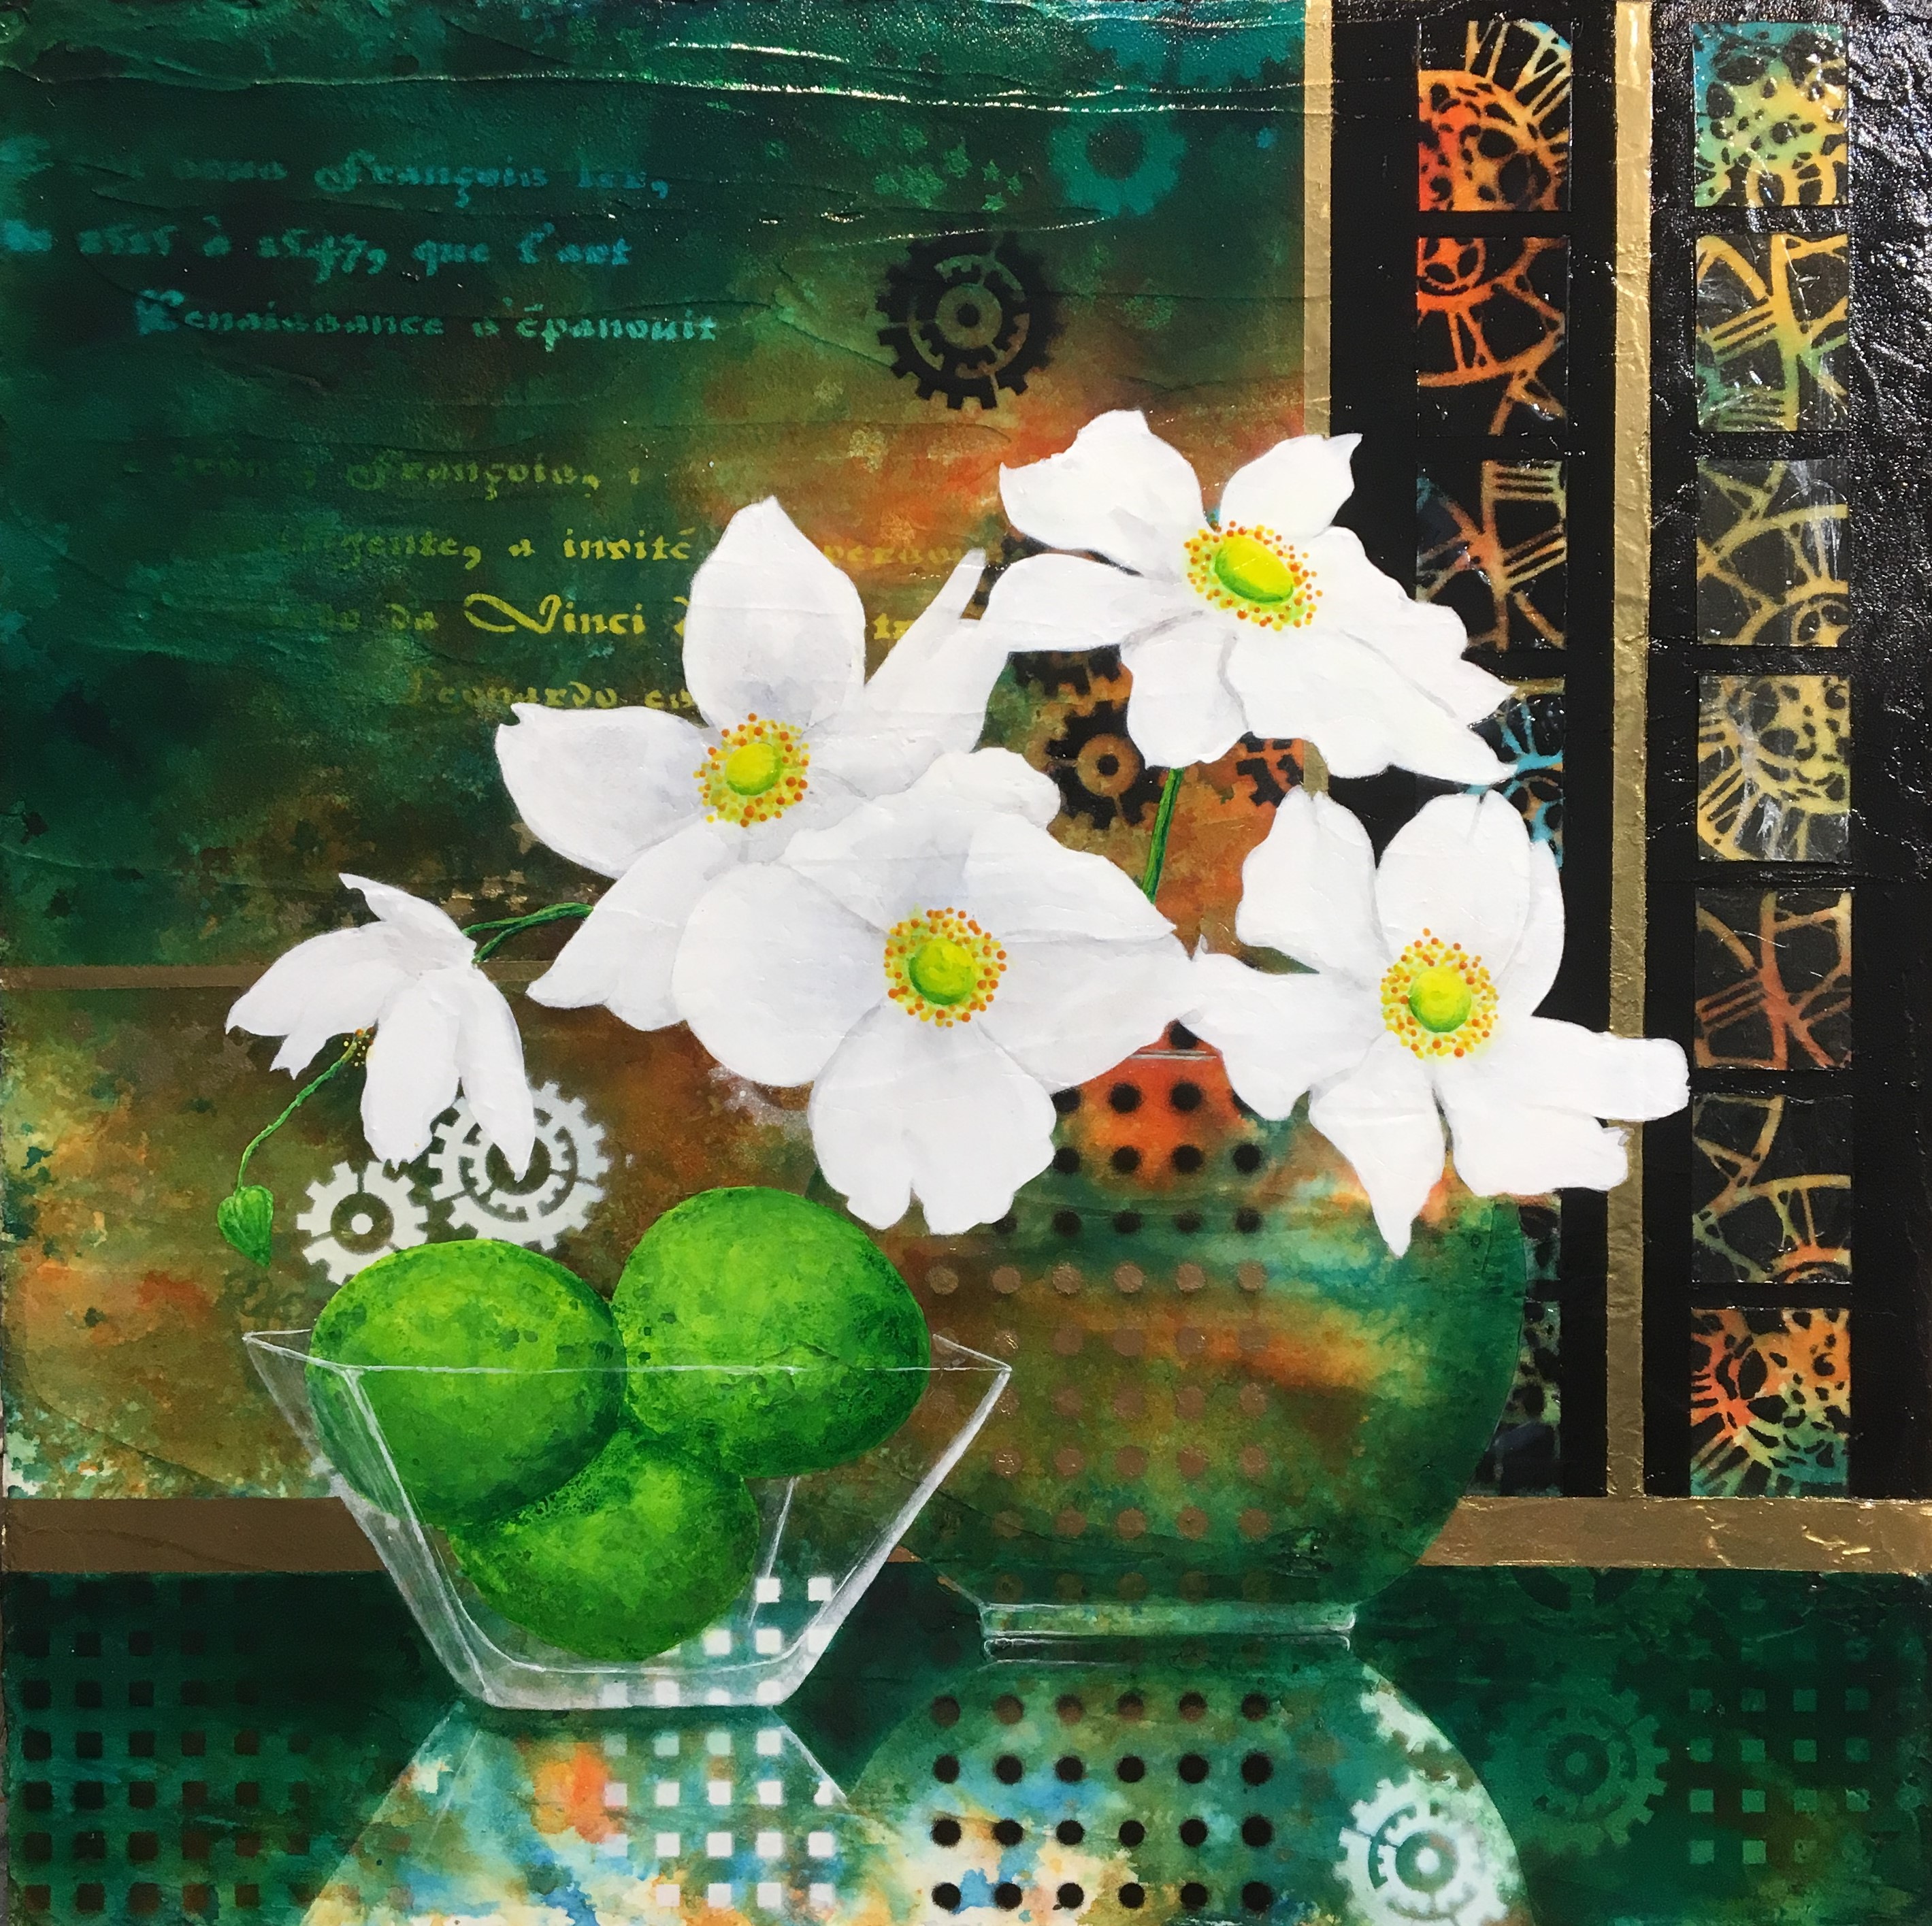 Limes and White Anemones